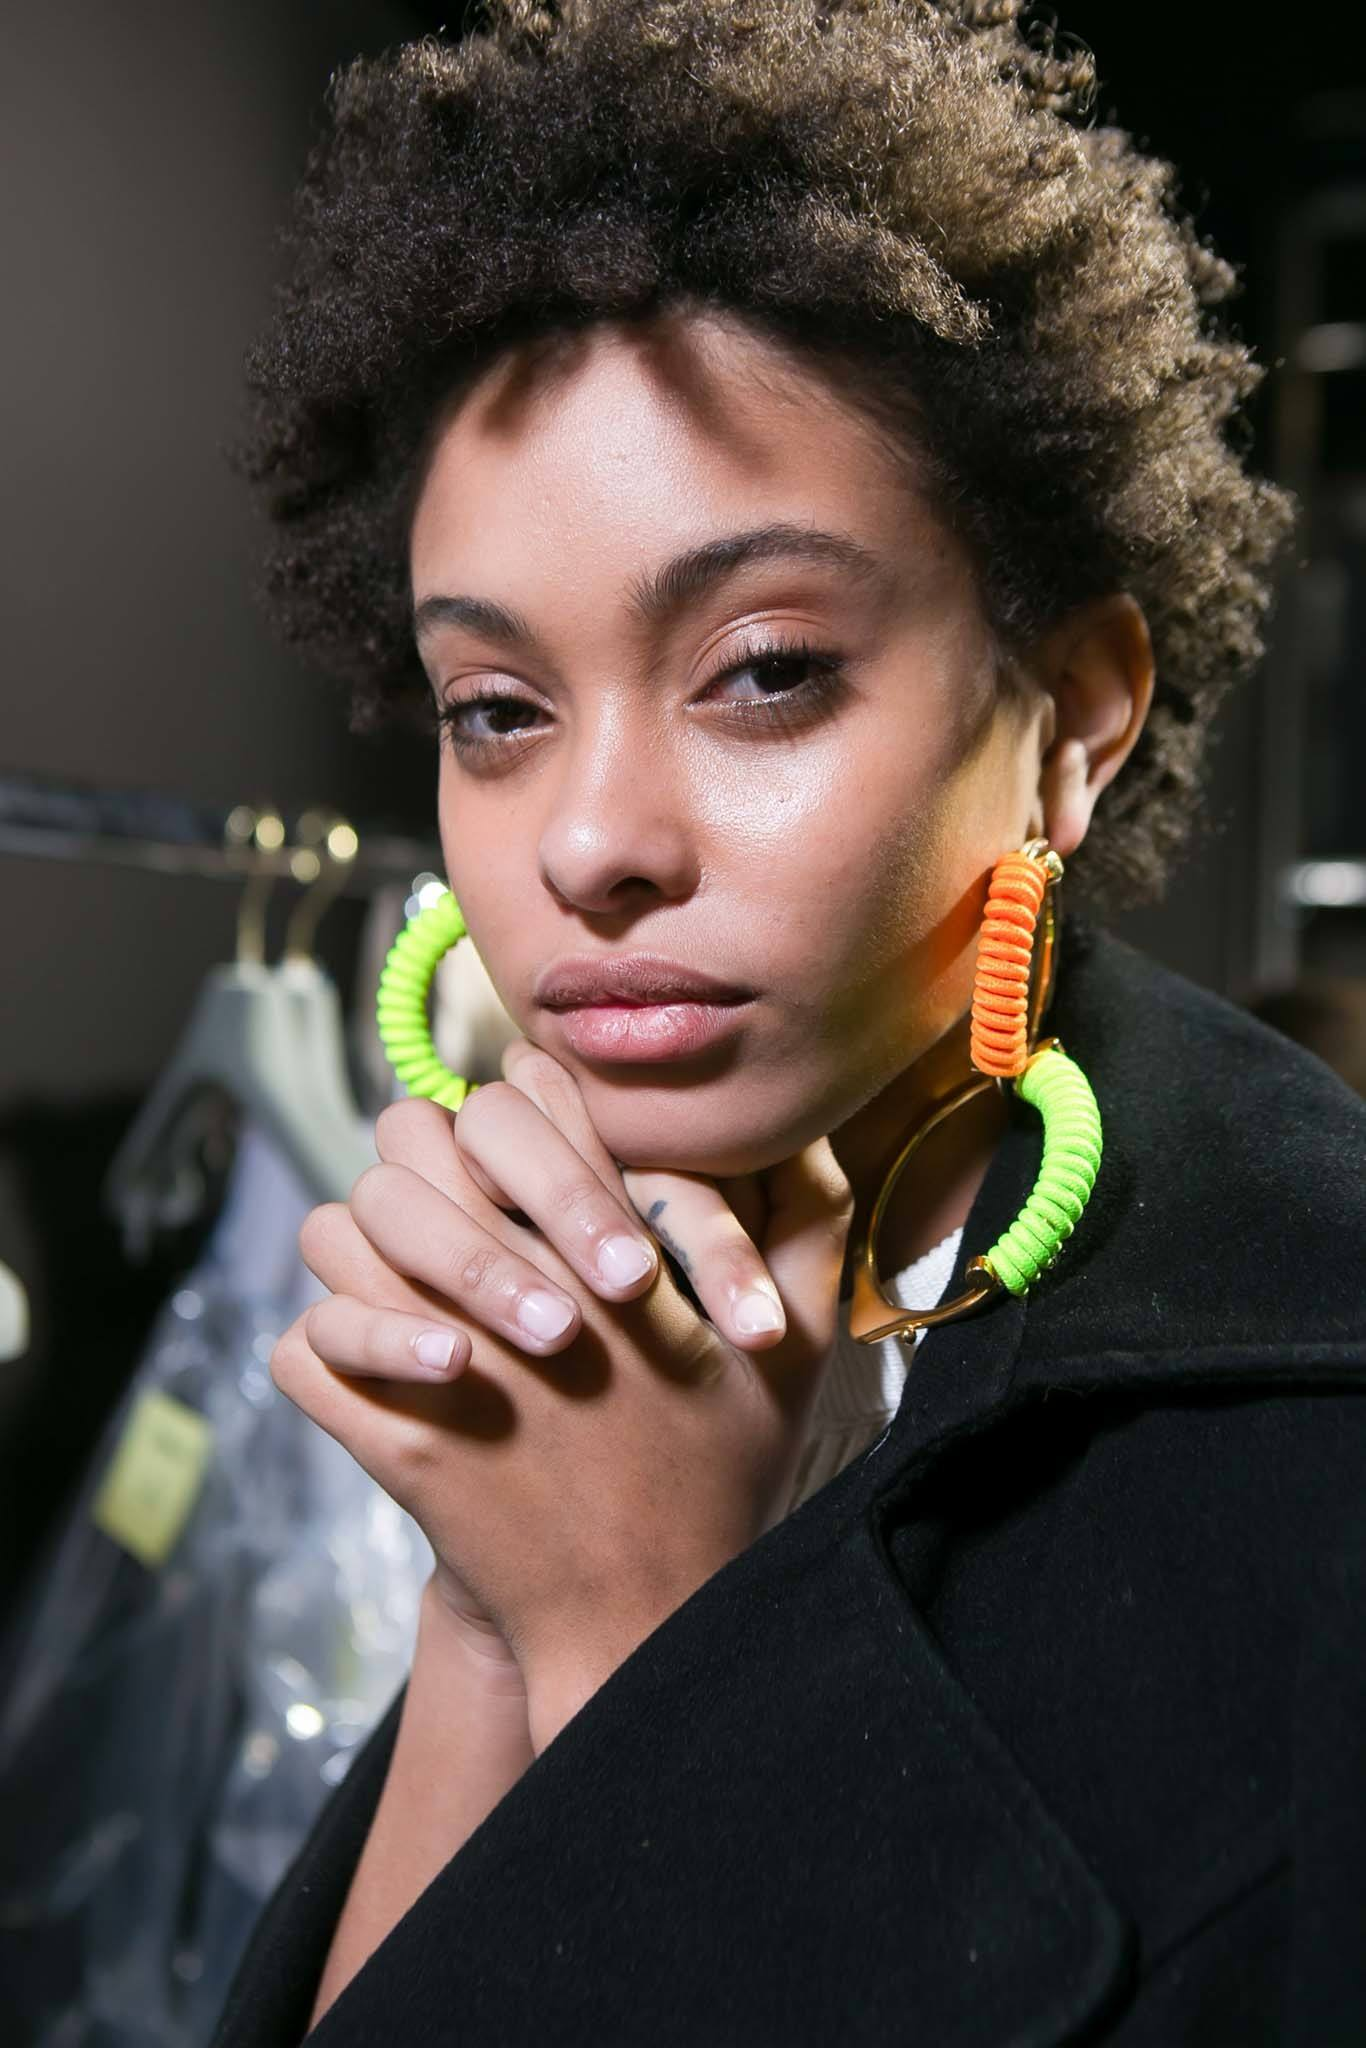 best leave in conditioner for dry hair: backstage shot of model with short afro hair backstage posing